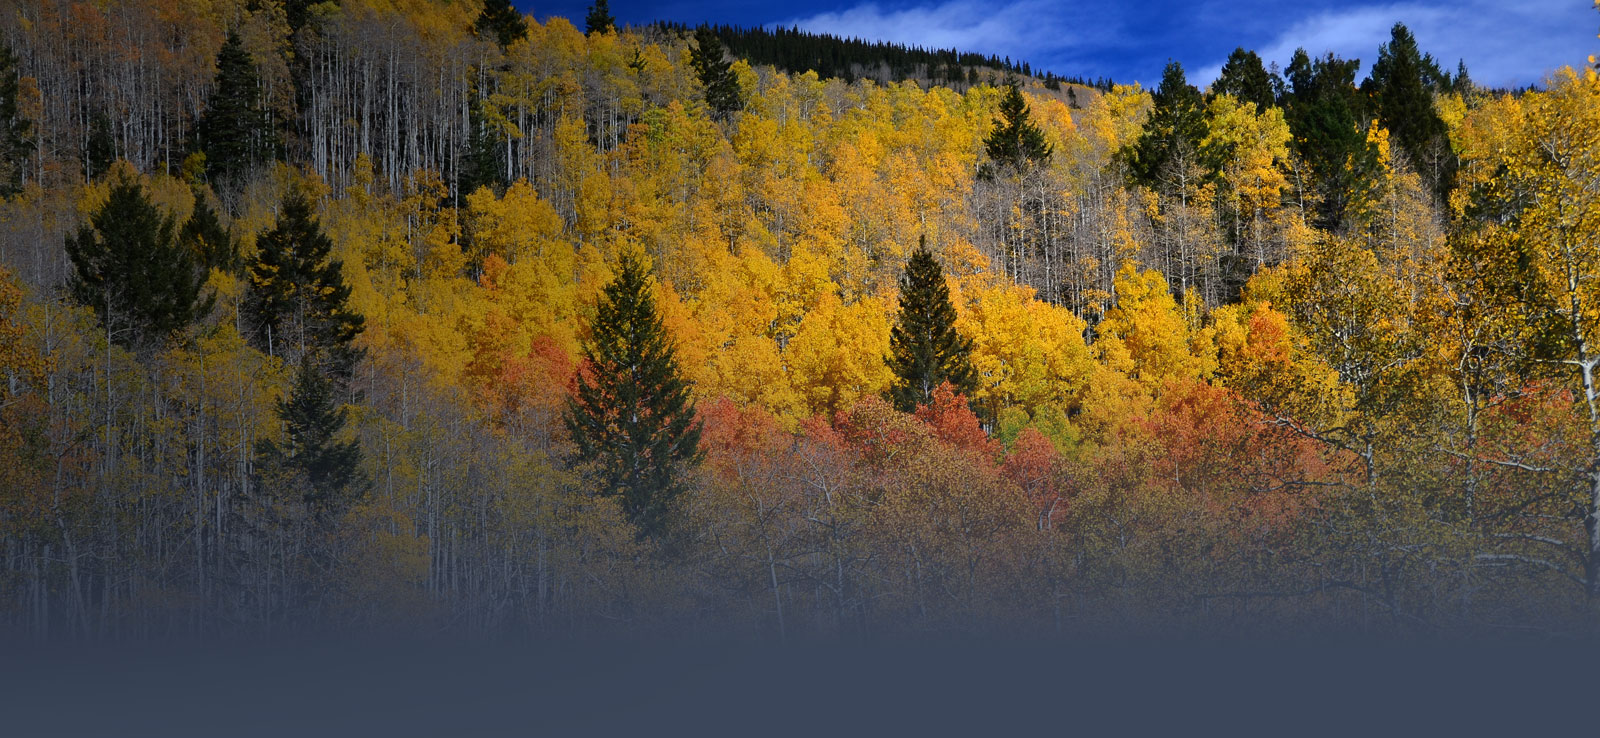 Aspen trees in vibrant Fall colors